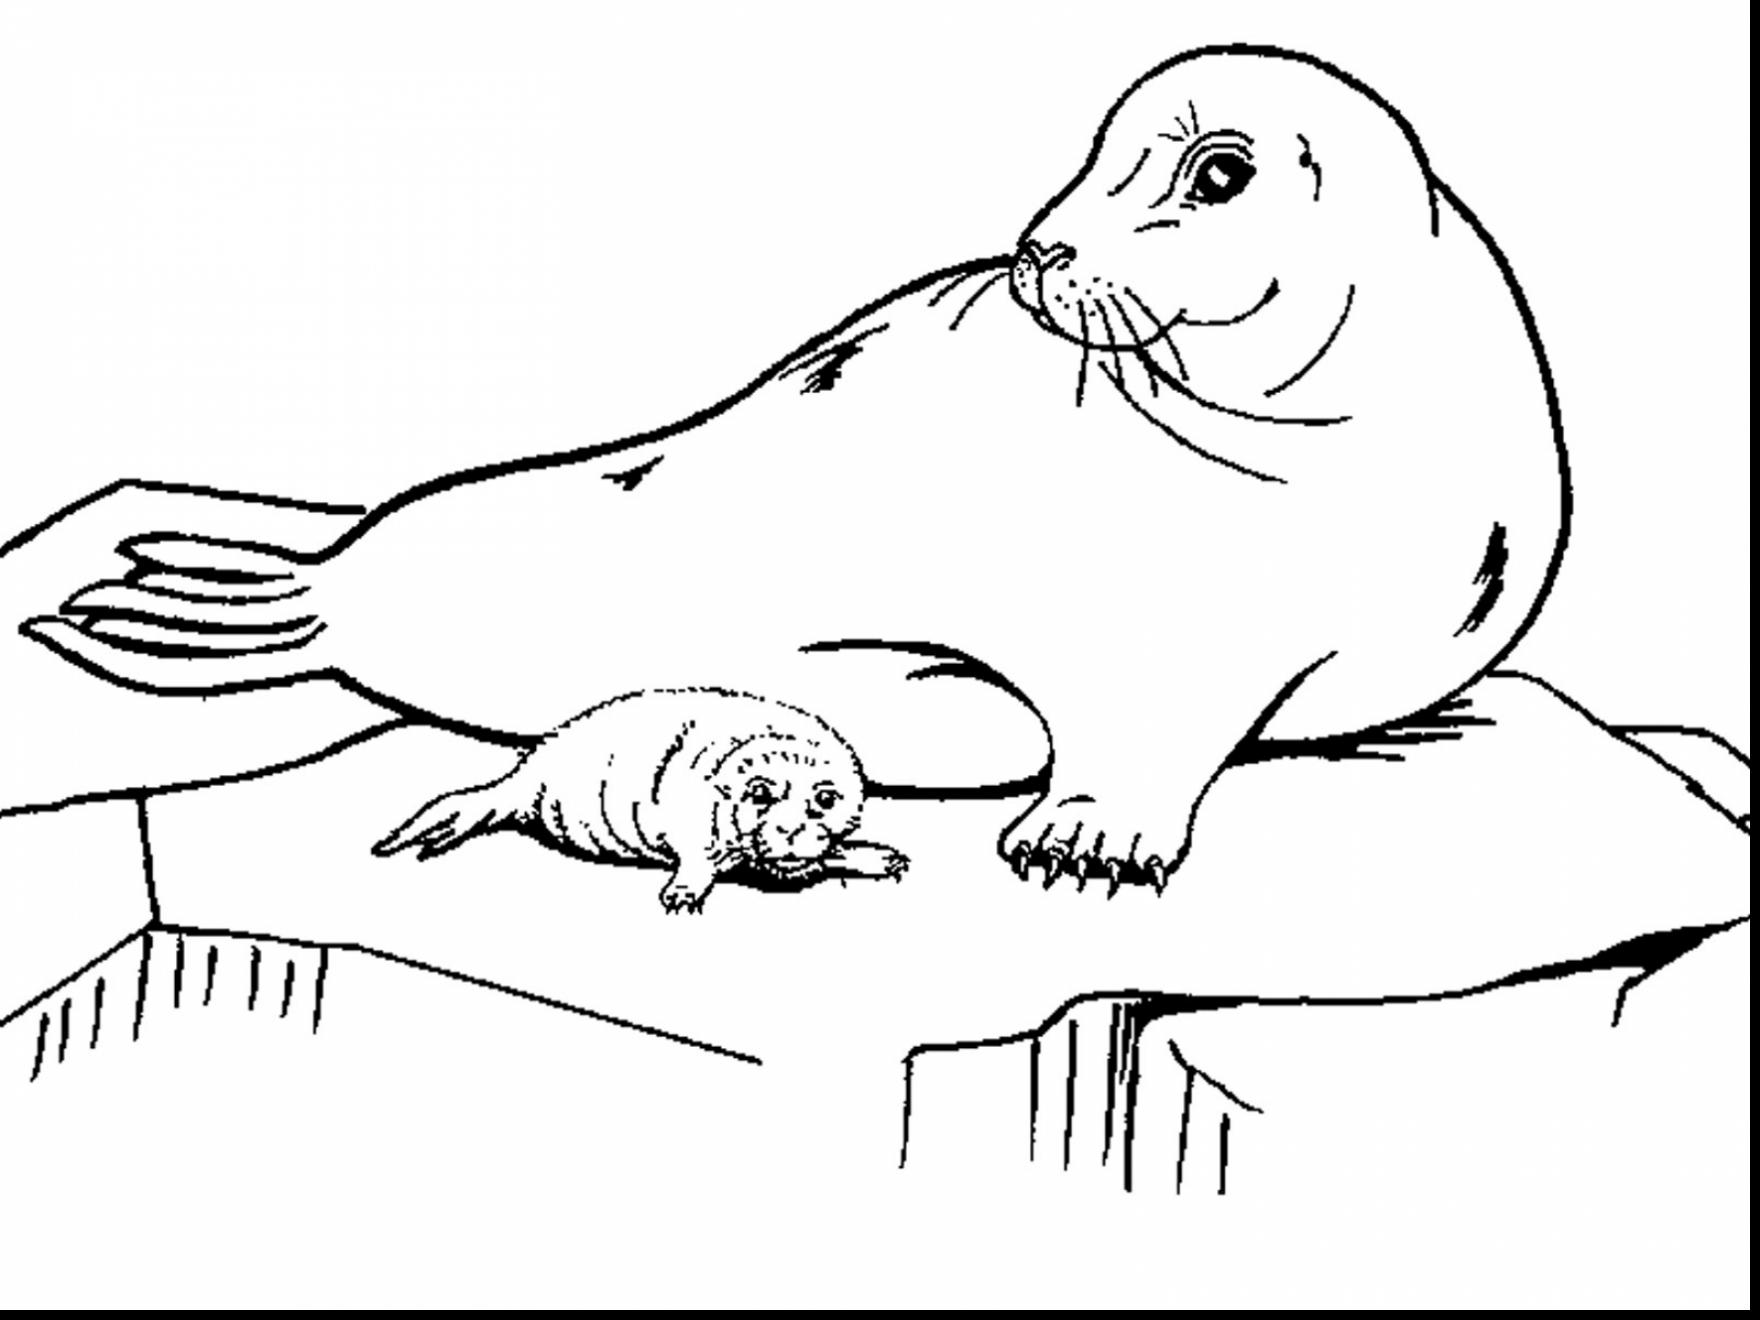 Seal Drawing at GetDrawings.com | Free for personal use Seal Drawing ...